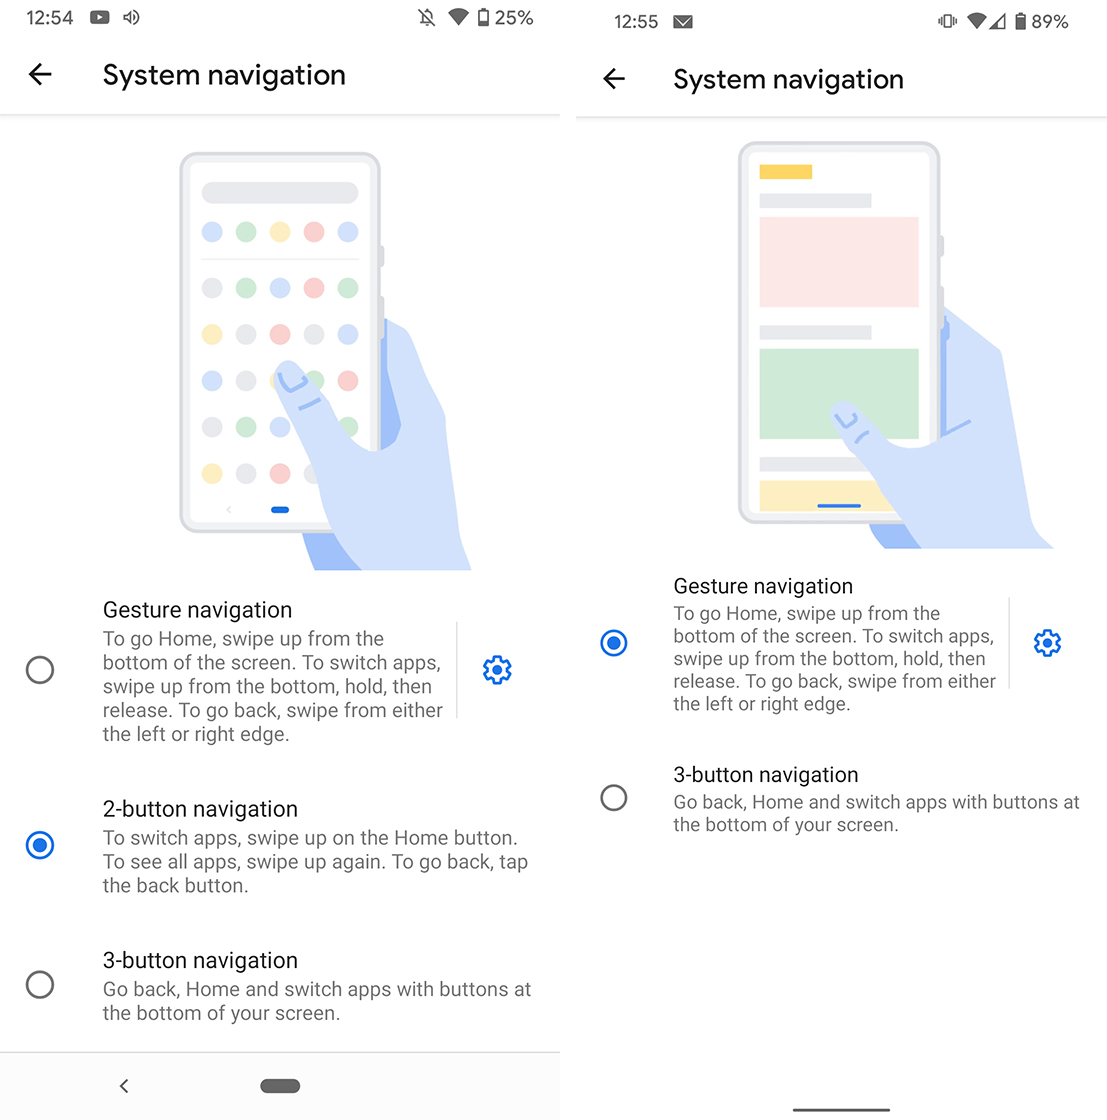 Old pill gestures vs new Android 10 gestures